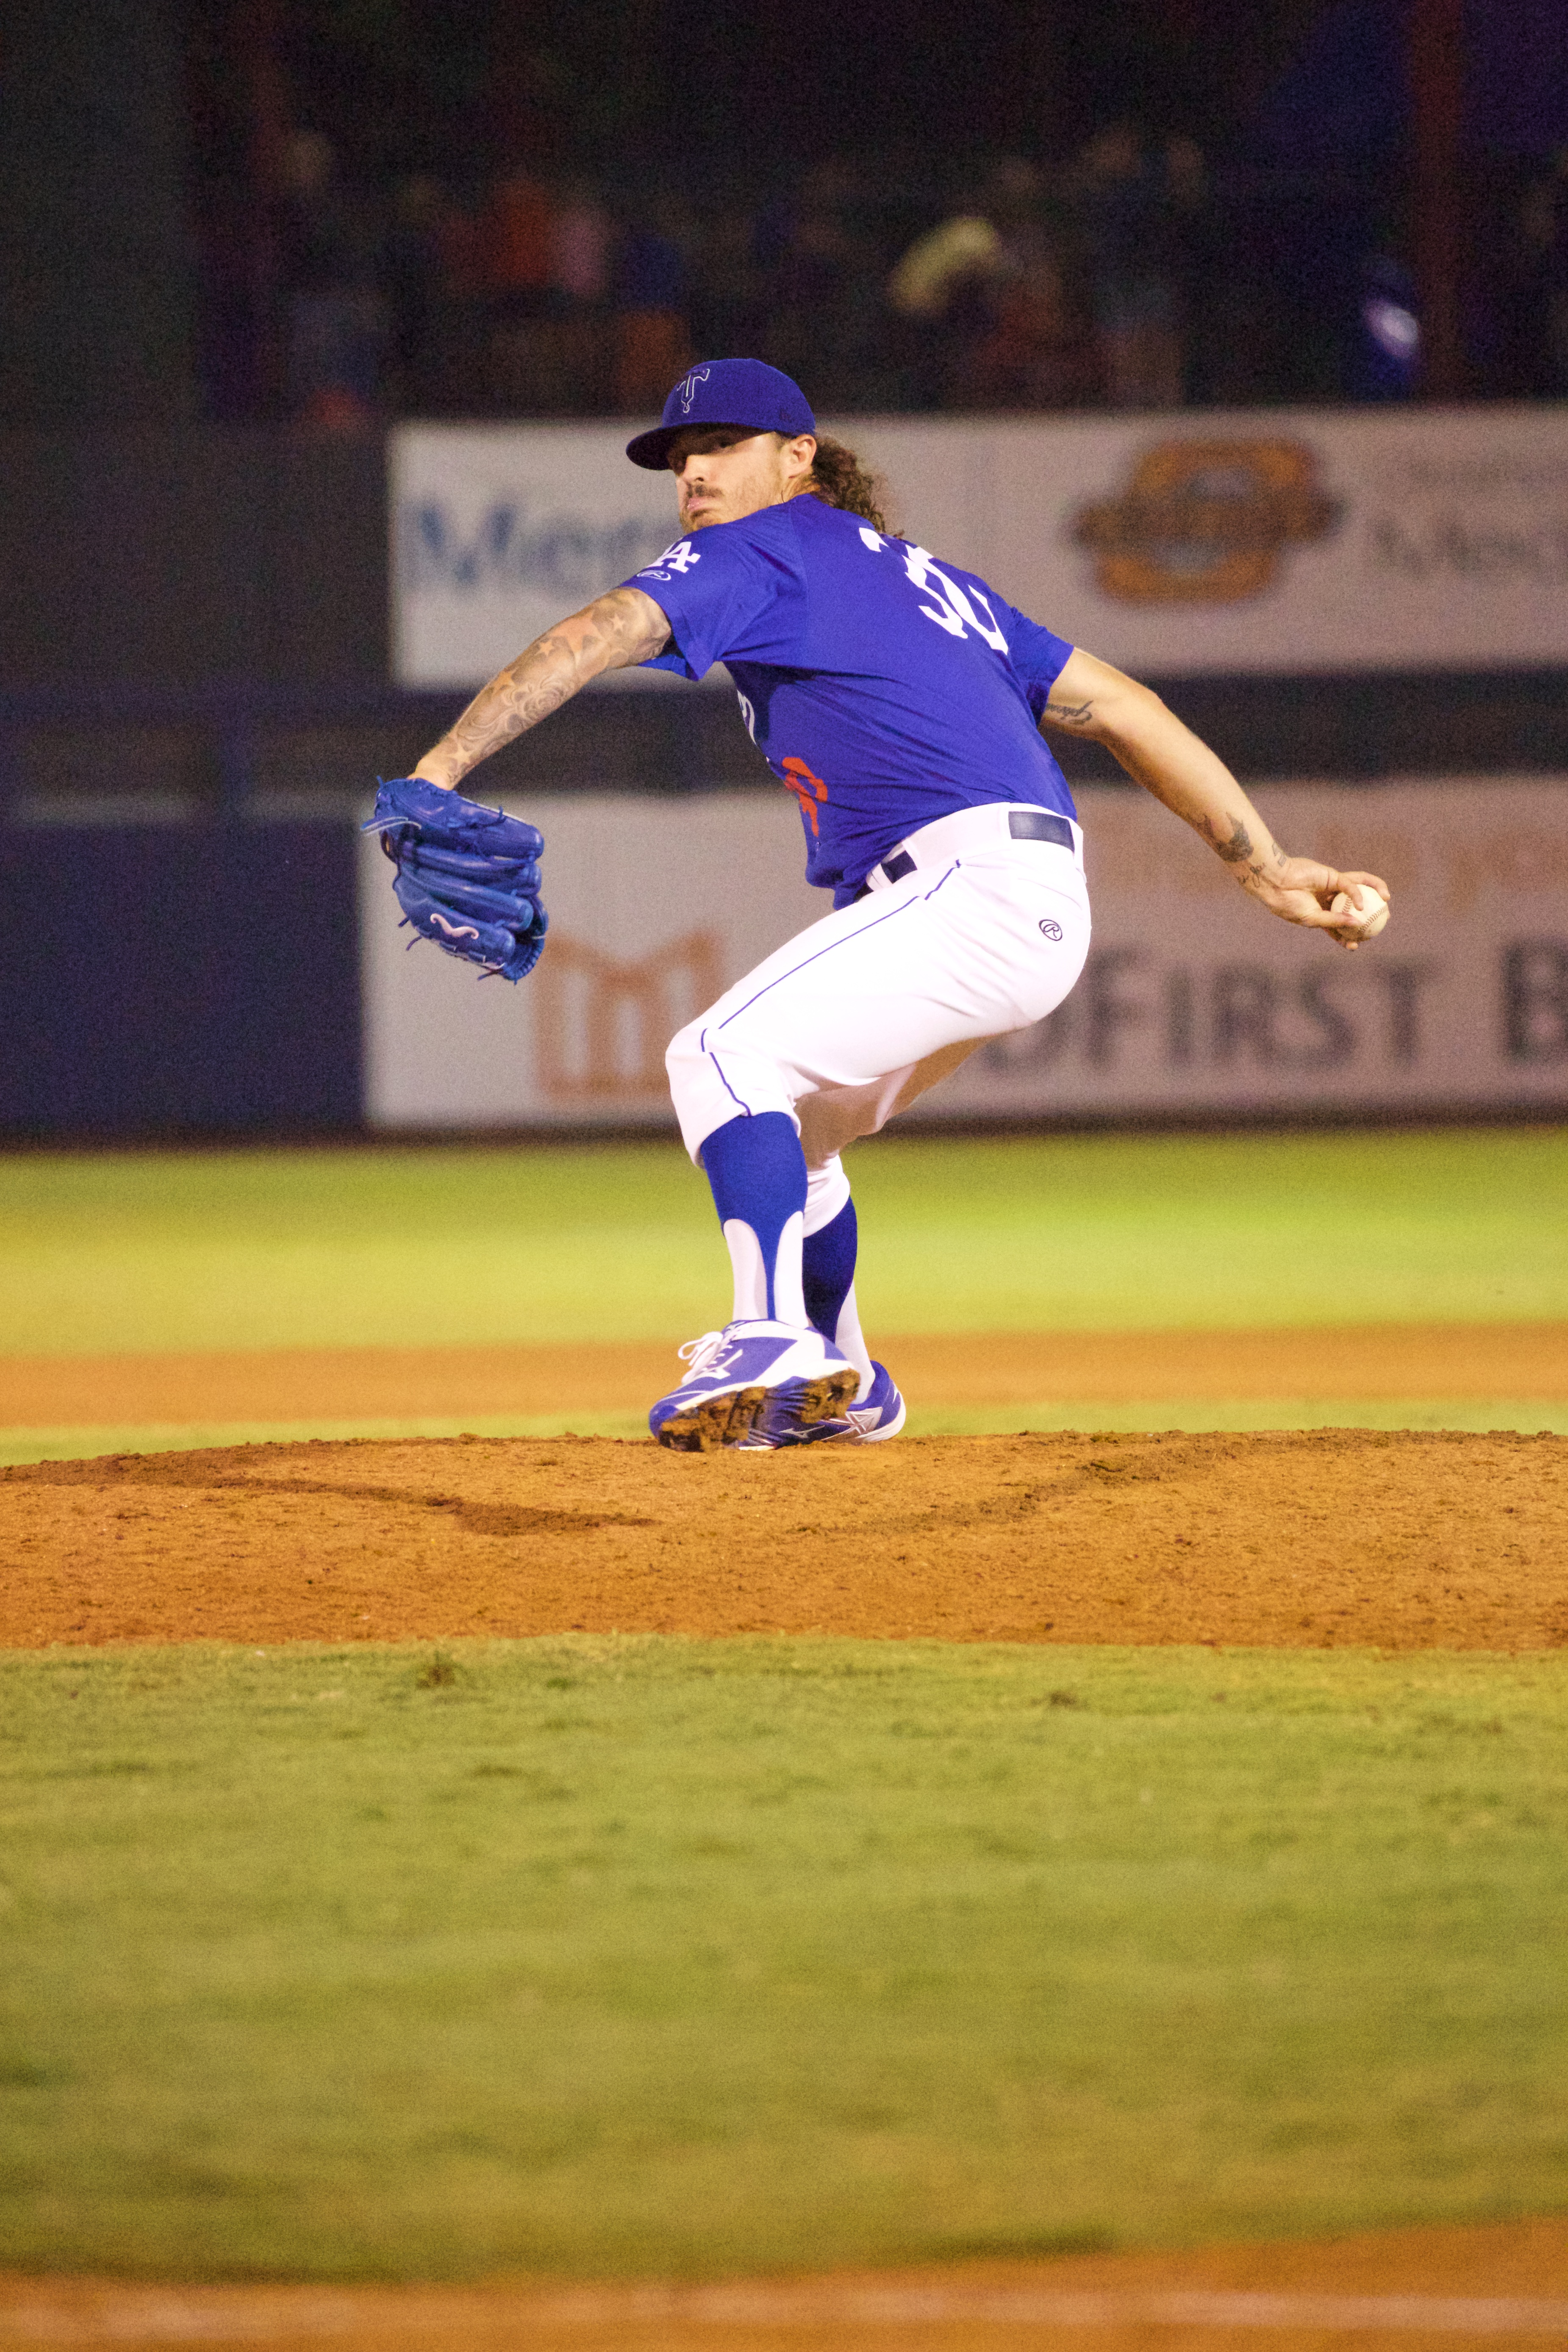 Ralston Cash struck out 58 batters in 58 innings with Double-A Tulsa in 2015.